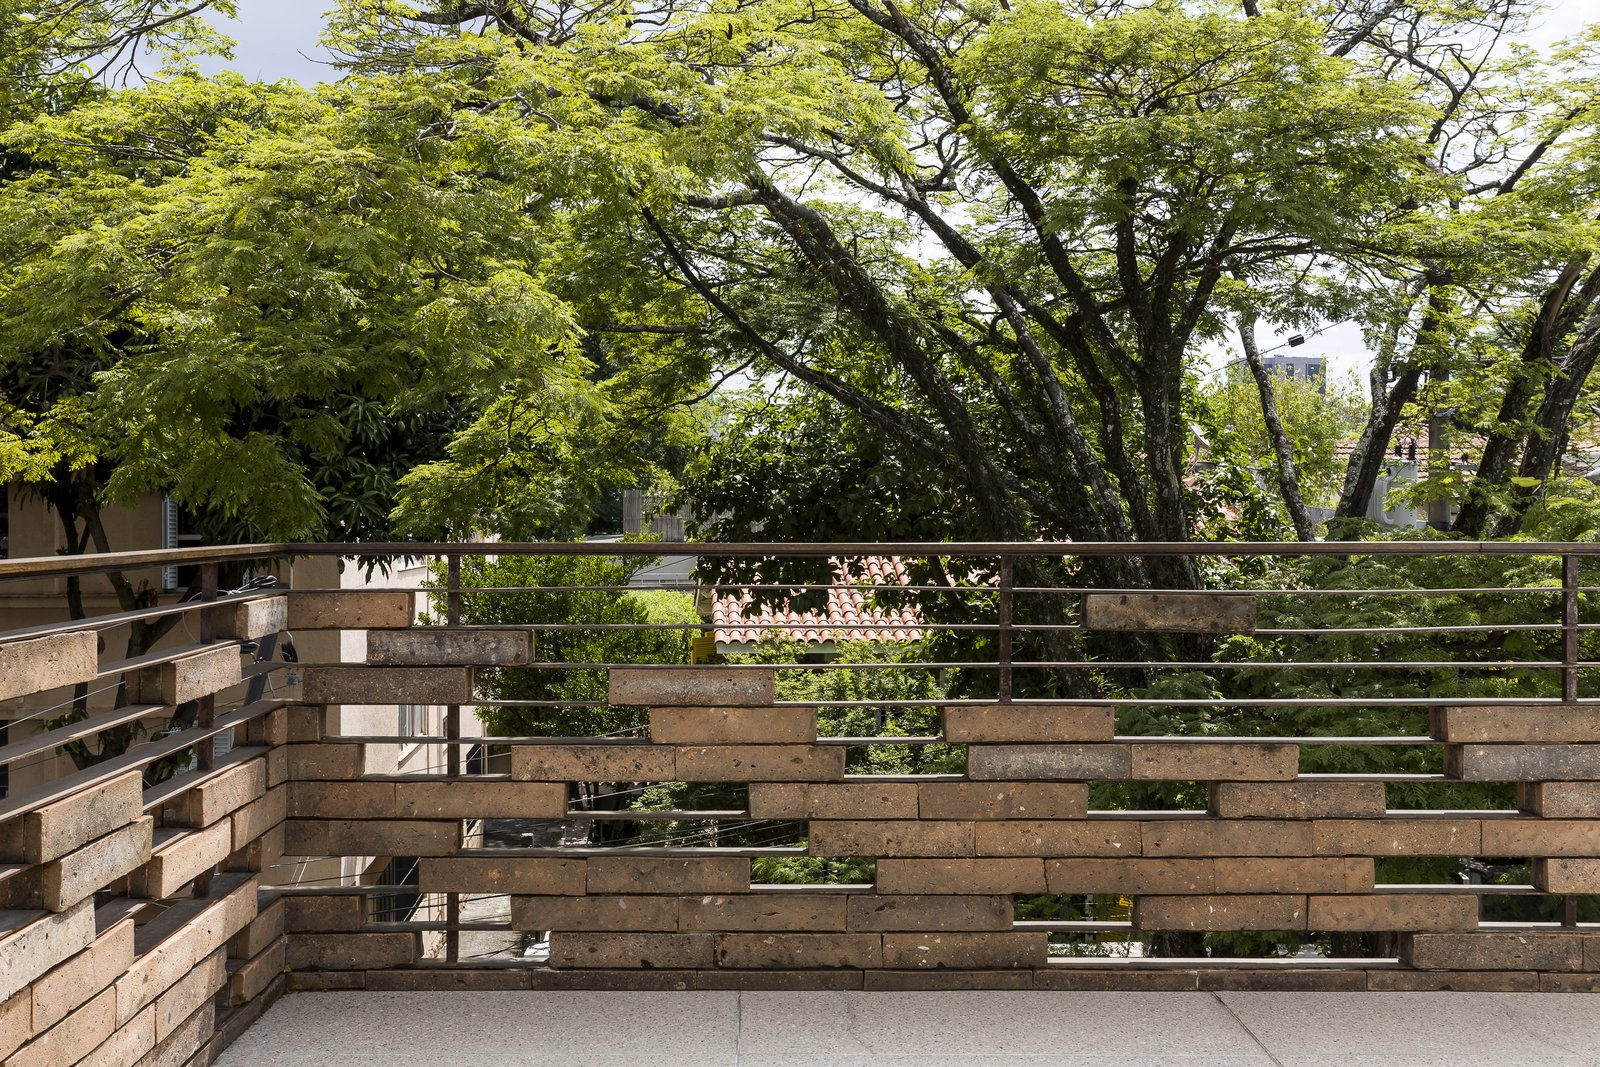 Outdoor, Rooftop, Large Patio, Porch, Deck, Trees, and Horizontal Fences, Wall  Photo 13 of 13 in Lush Gardens Infuse Tropical Vibes in This Chic Brazilian Home